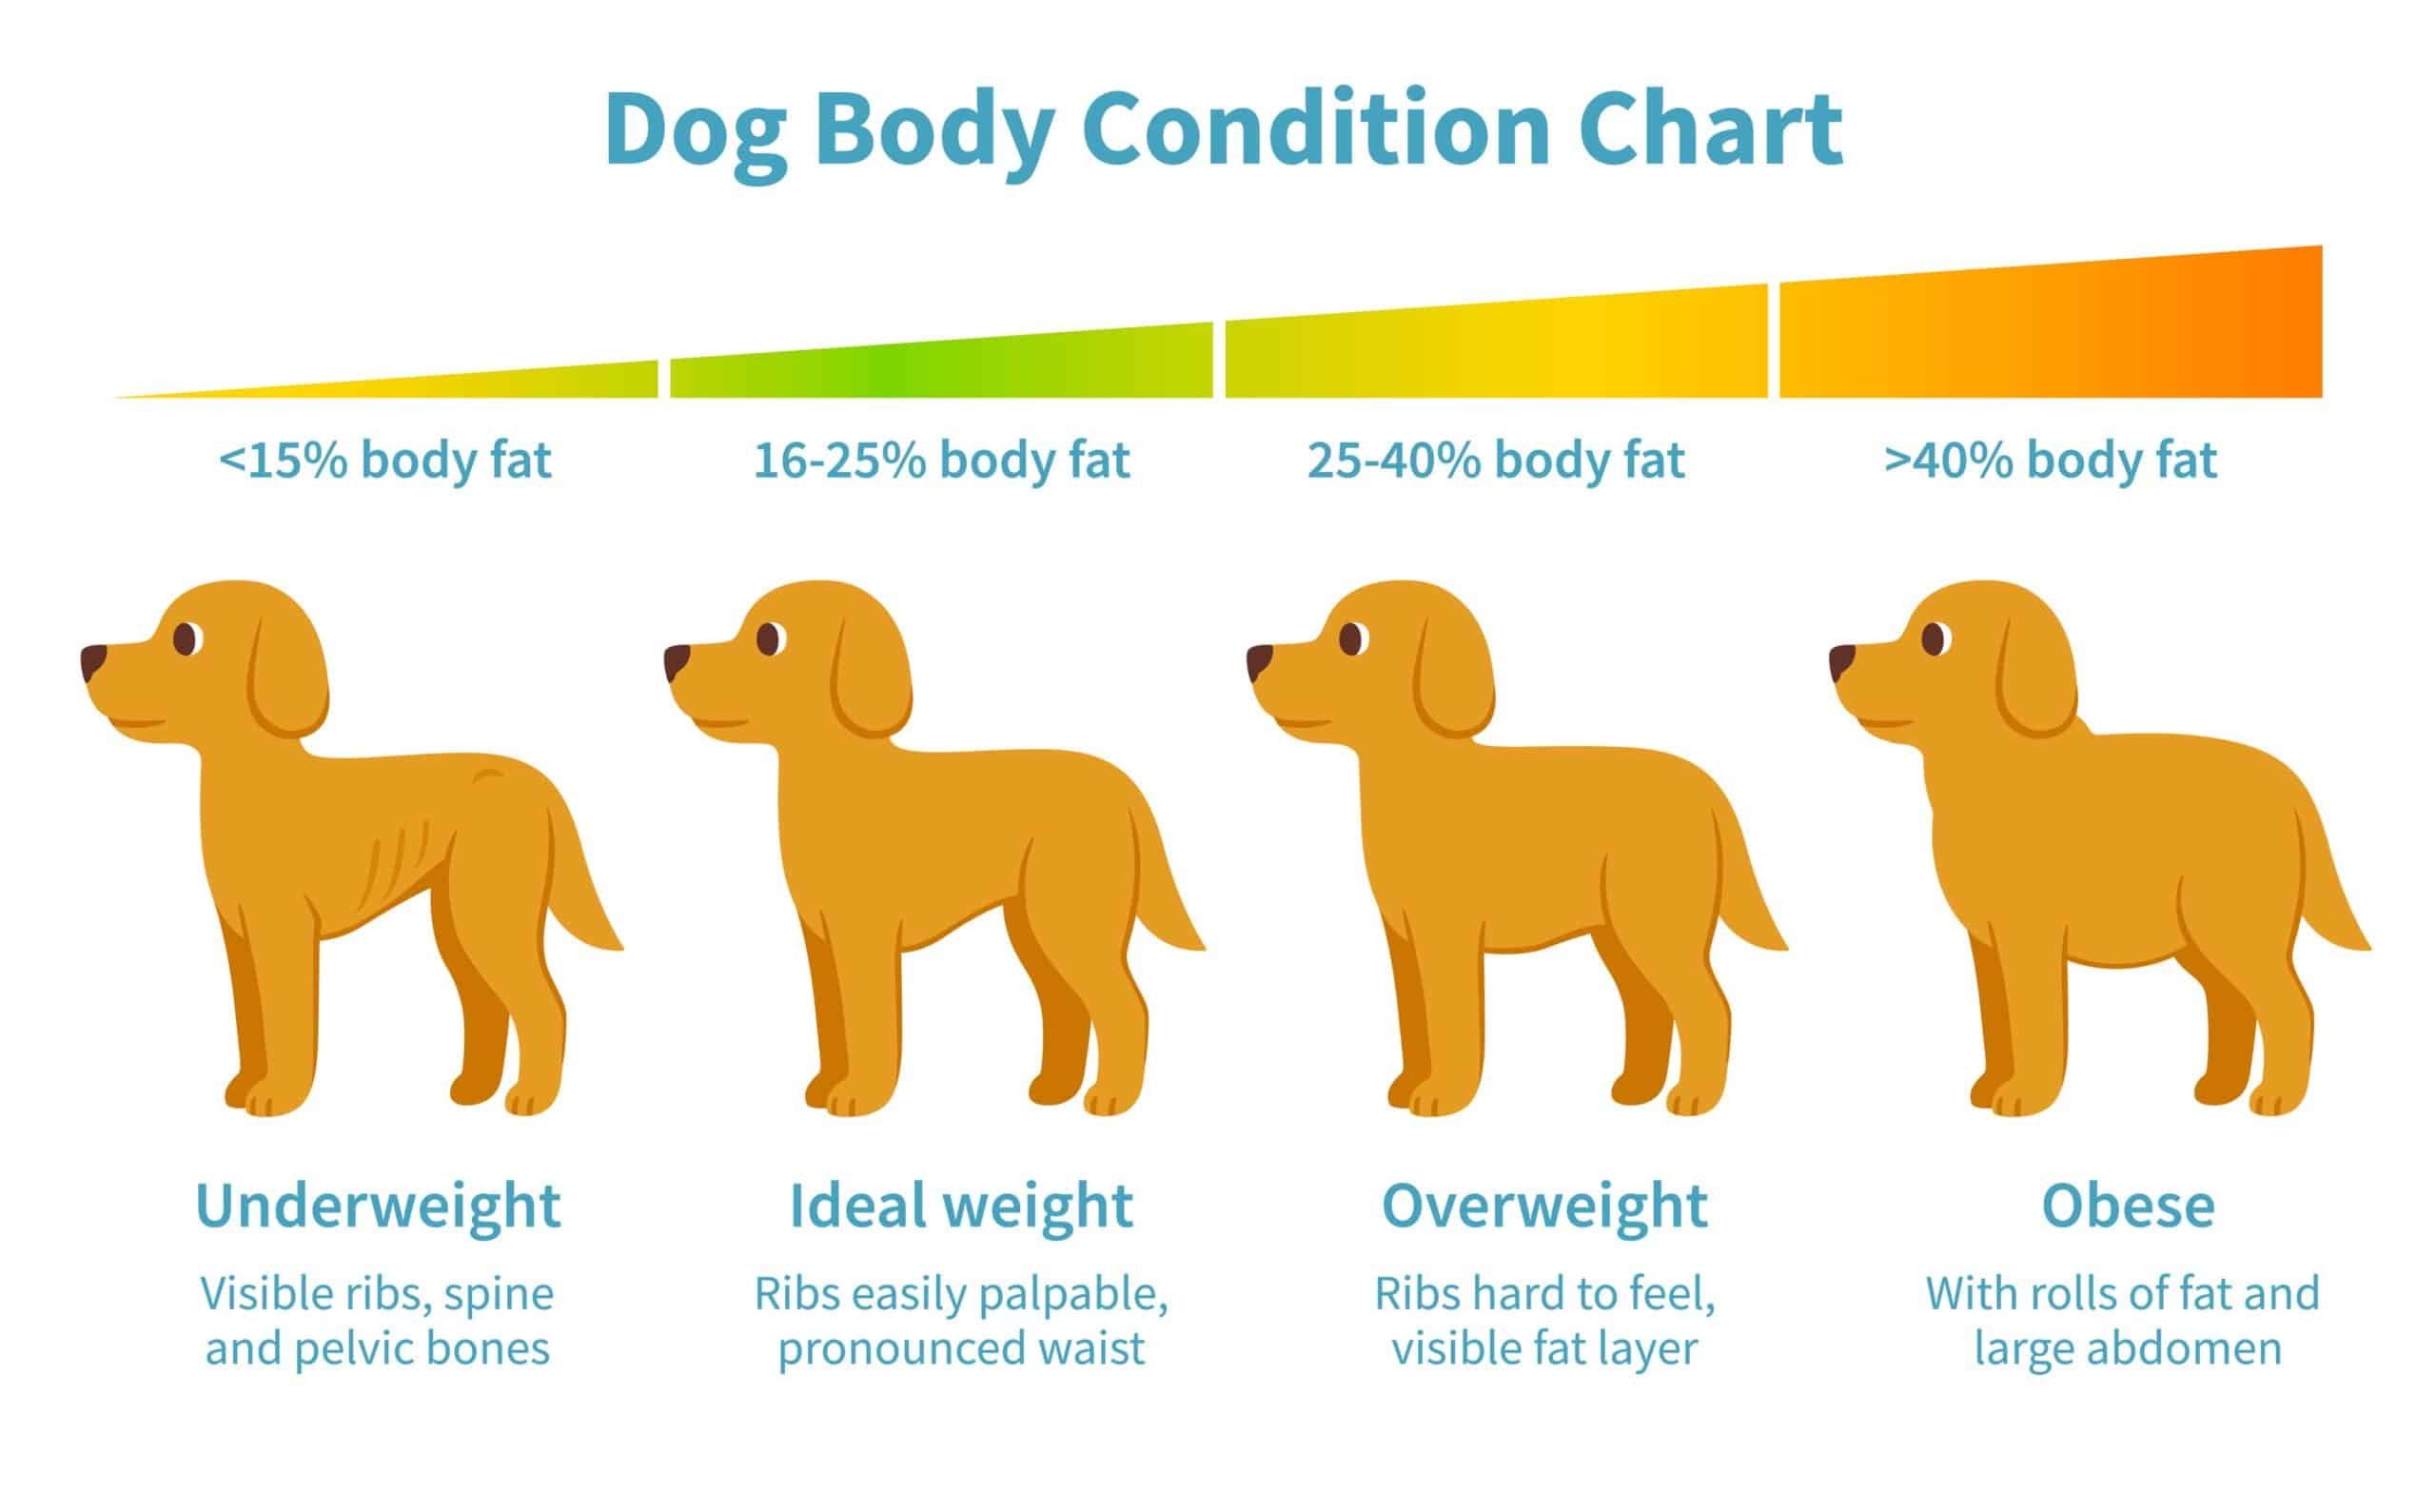 Chart illustrates weight ranges for dogs. Work with your vet to help your rescue dog gain weight. Feed your pup high-calorie, healthy dog food with supplements as needed.